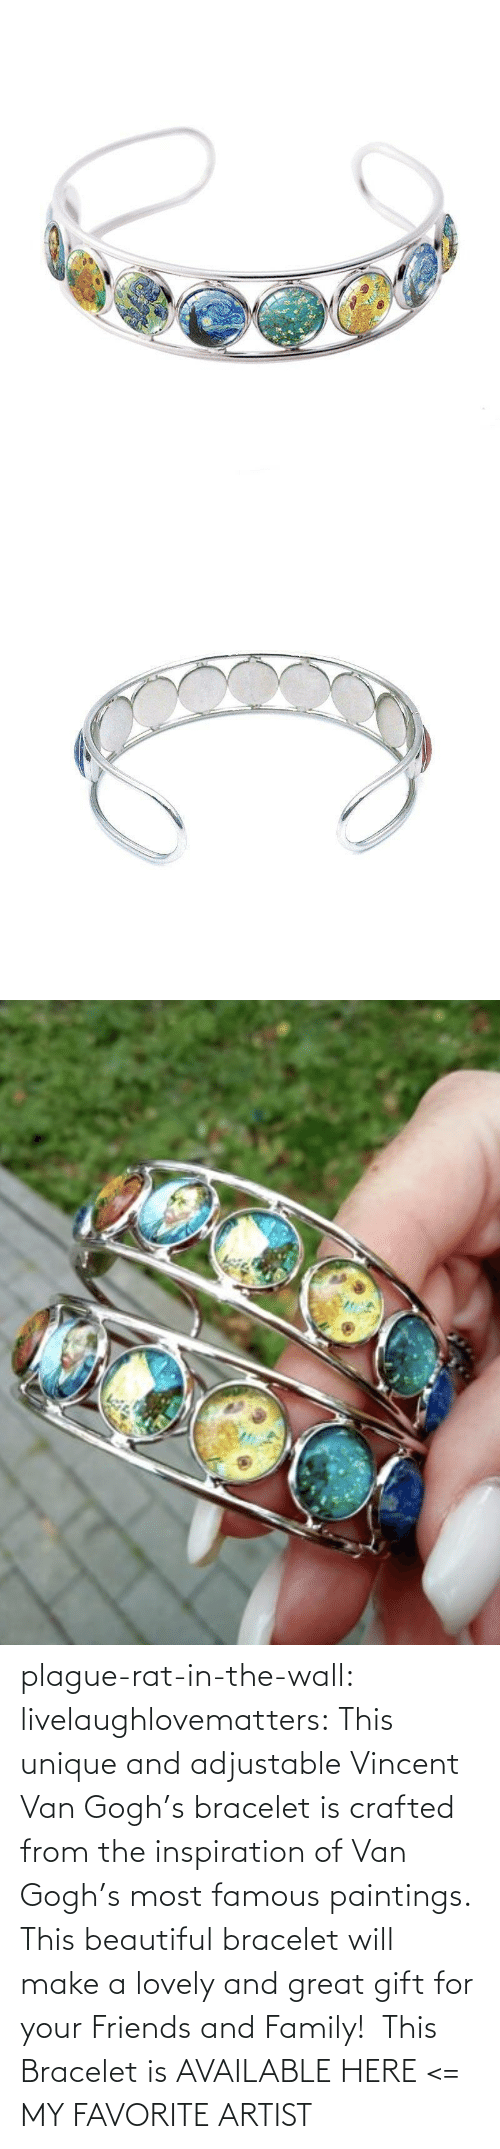 Vincent van Gogh: plague-rat-in-the-wall:  livelaughlovematters: This unique and adjustable Vincent Van Gogh's bracelet is crafted from the inspiration of Van Gogh's most famous paintings. This beautiful bracelet will make a lovely and great gift for your Friends and Family!  This Bracelet is AVAILABLE HERE <=  MY FAVORITE ARTIST